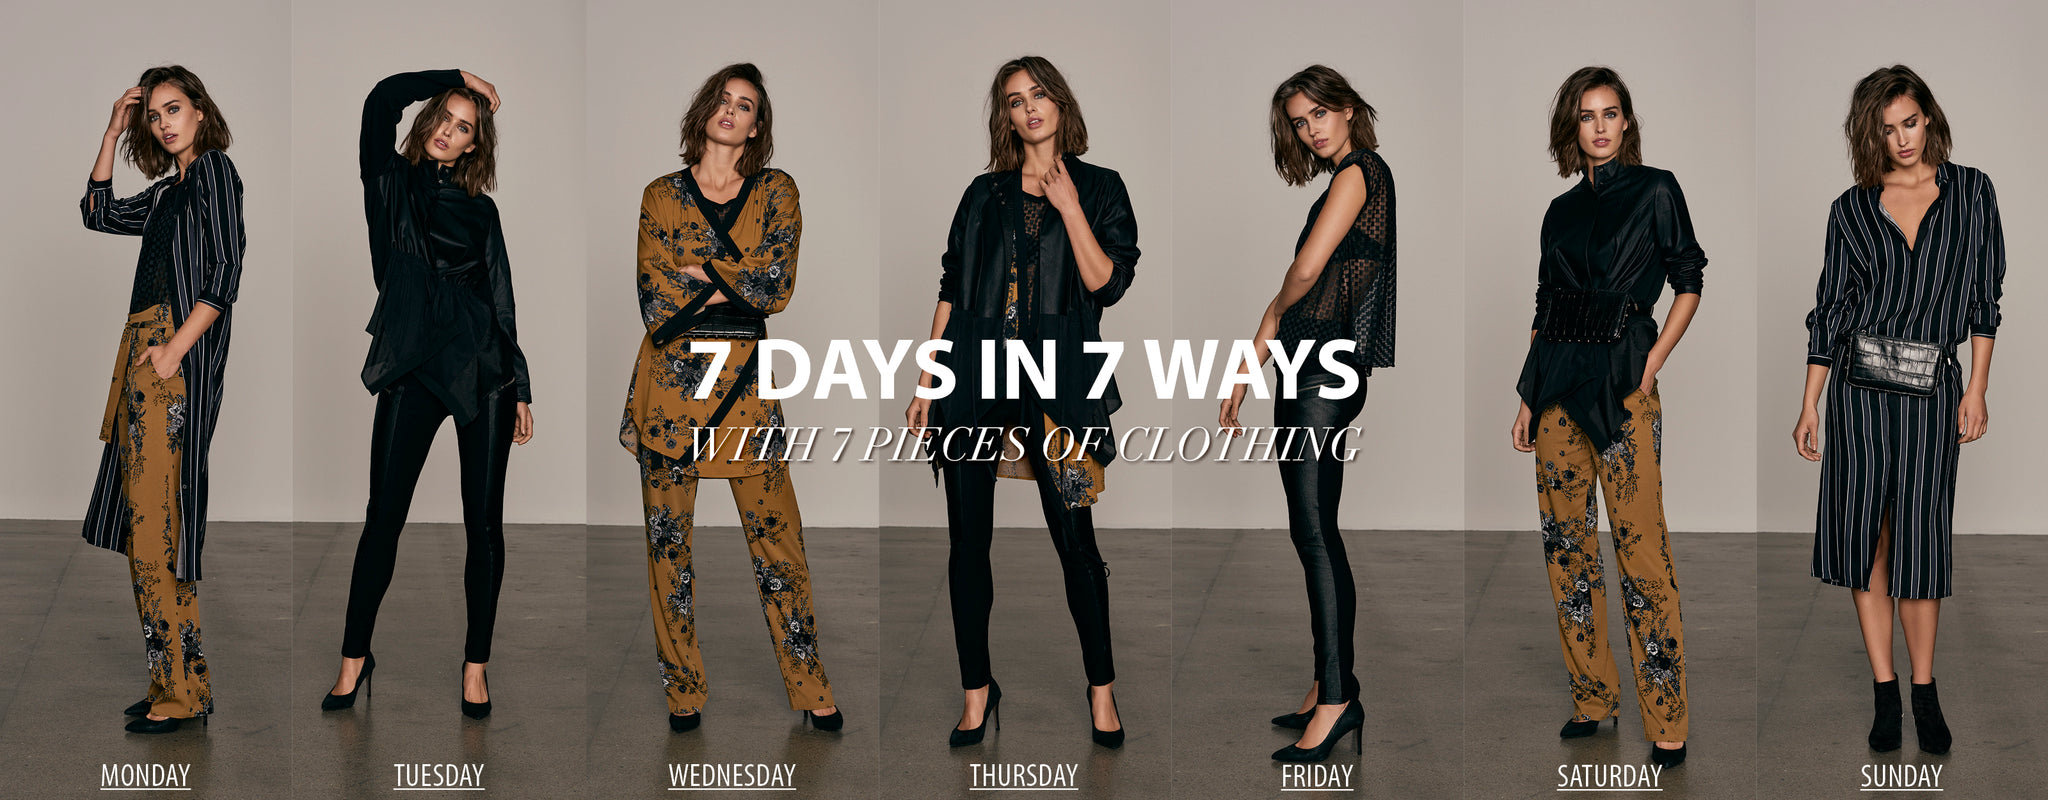 7 Days in 7 Ways Stylingguide